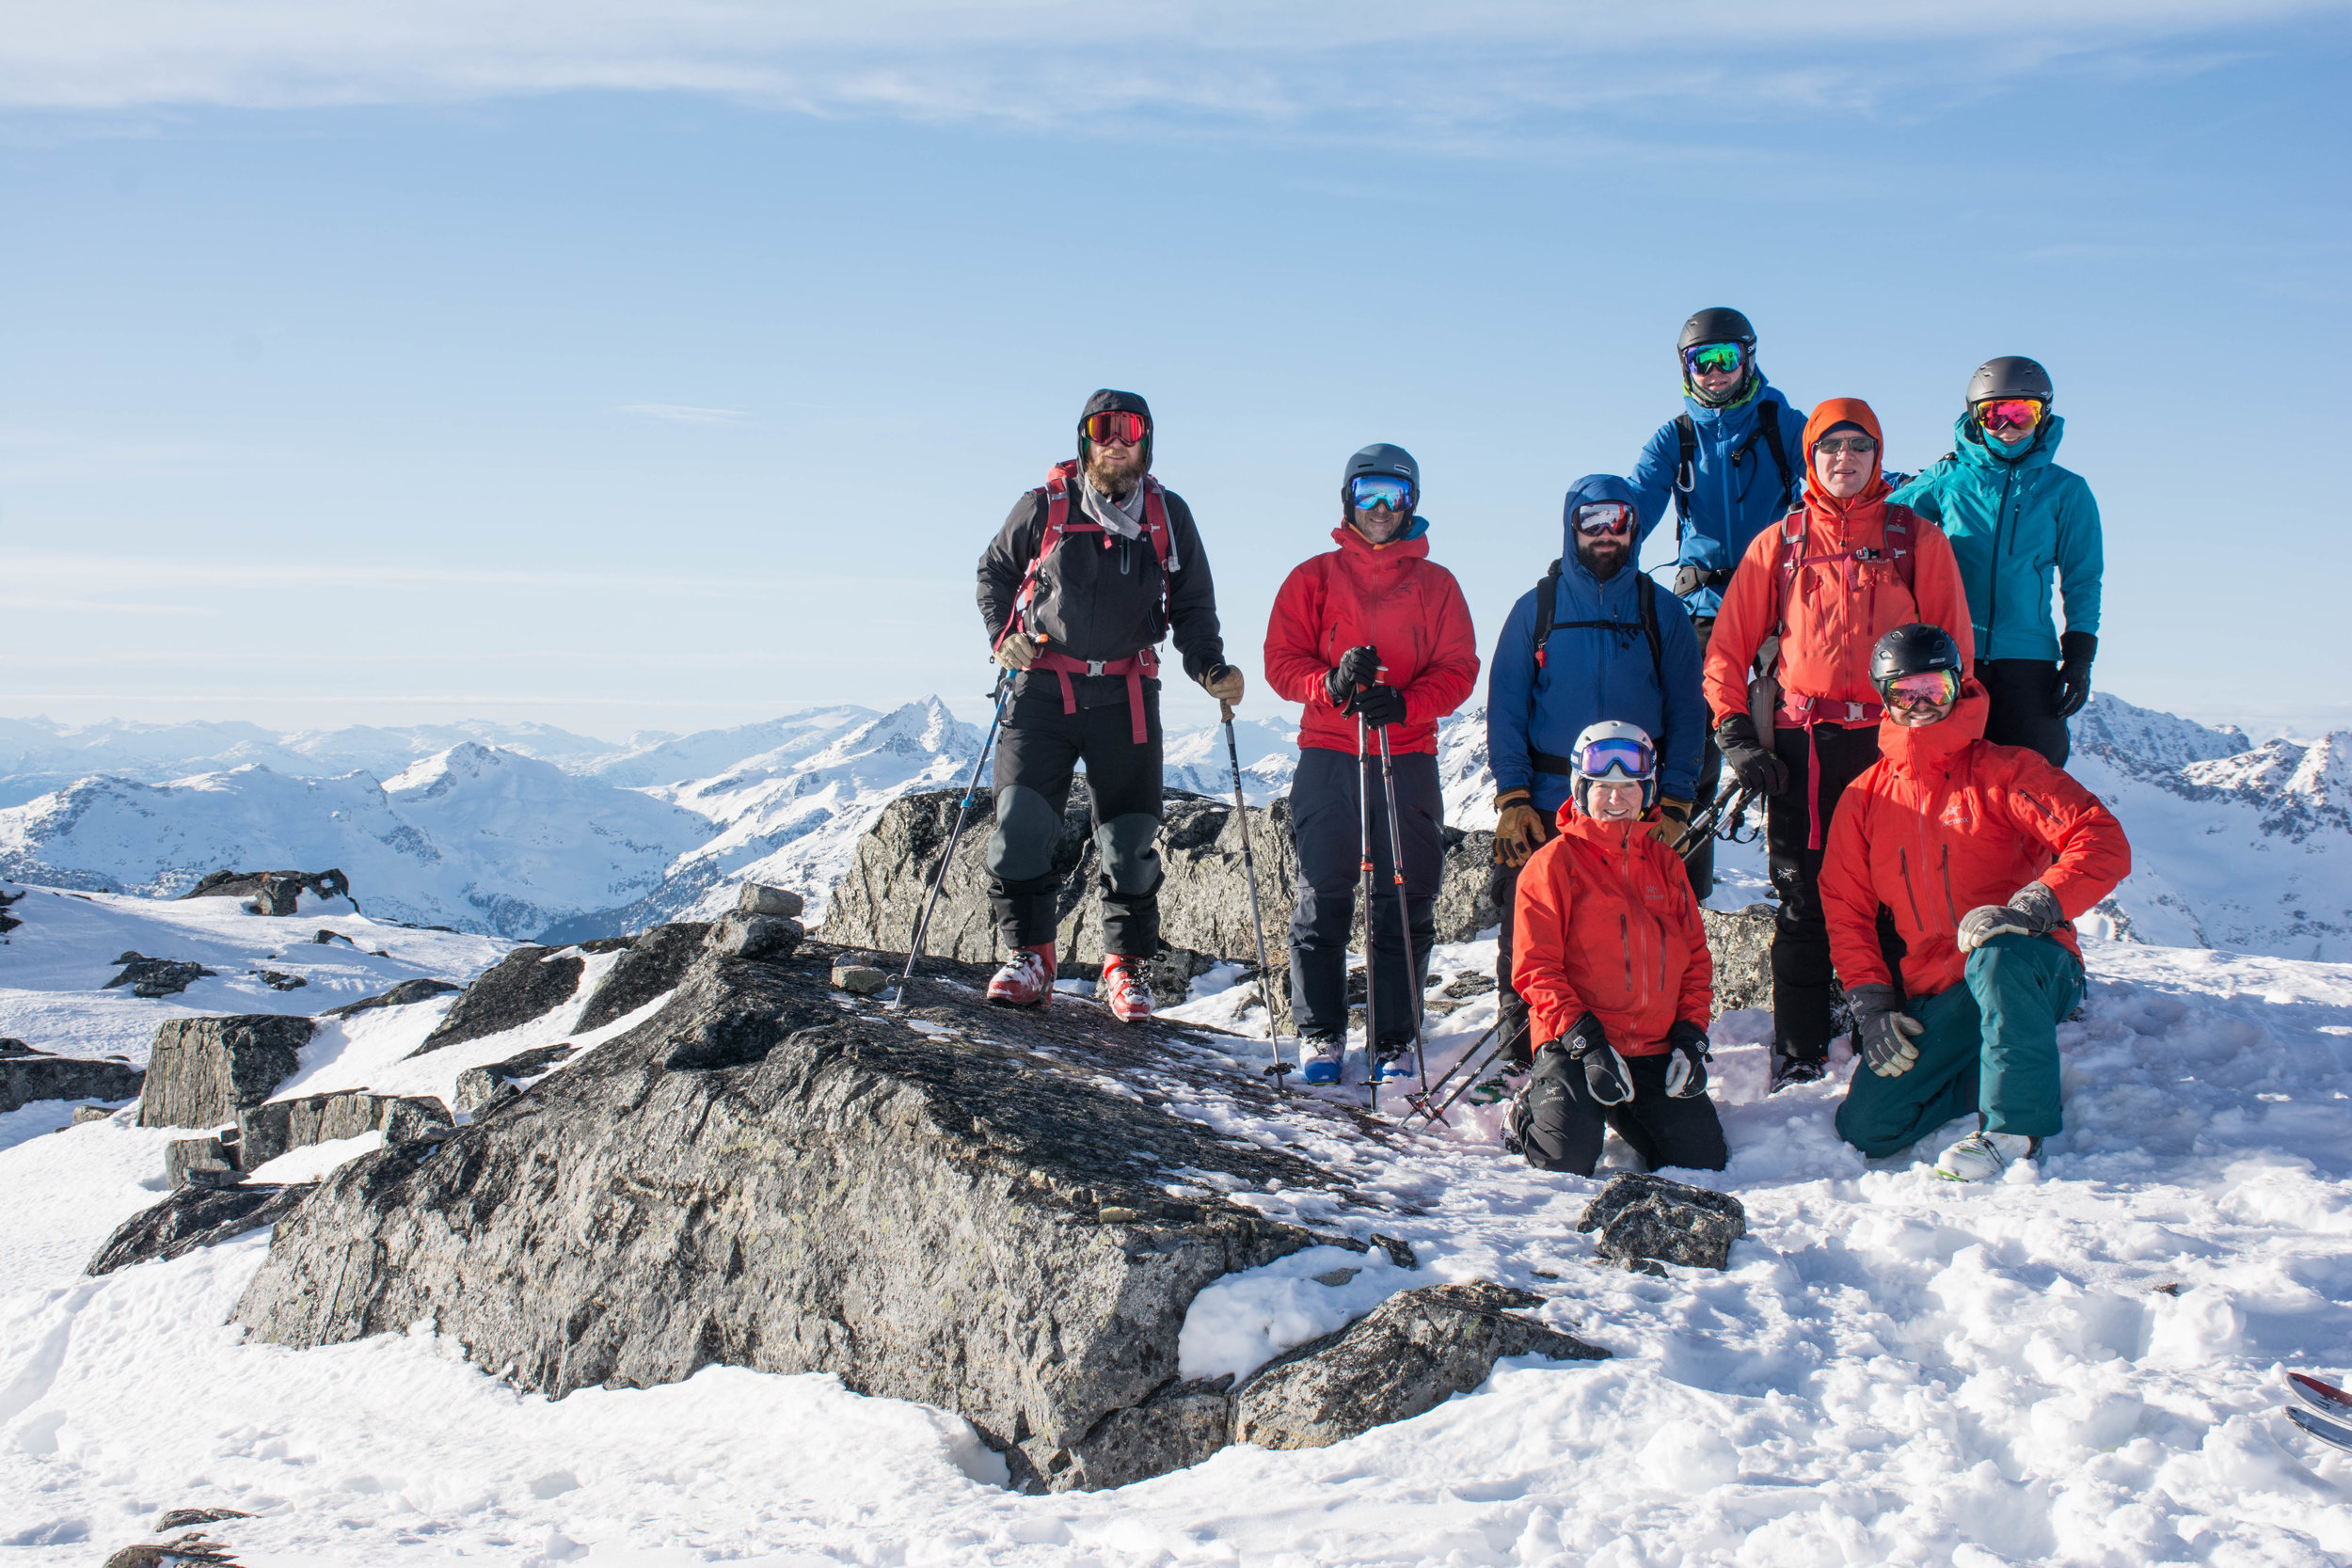 Group shot on the Summit of Rohr